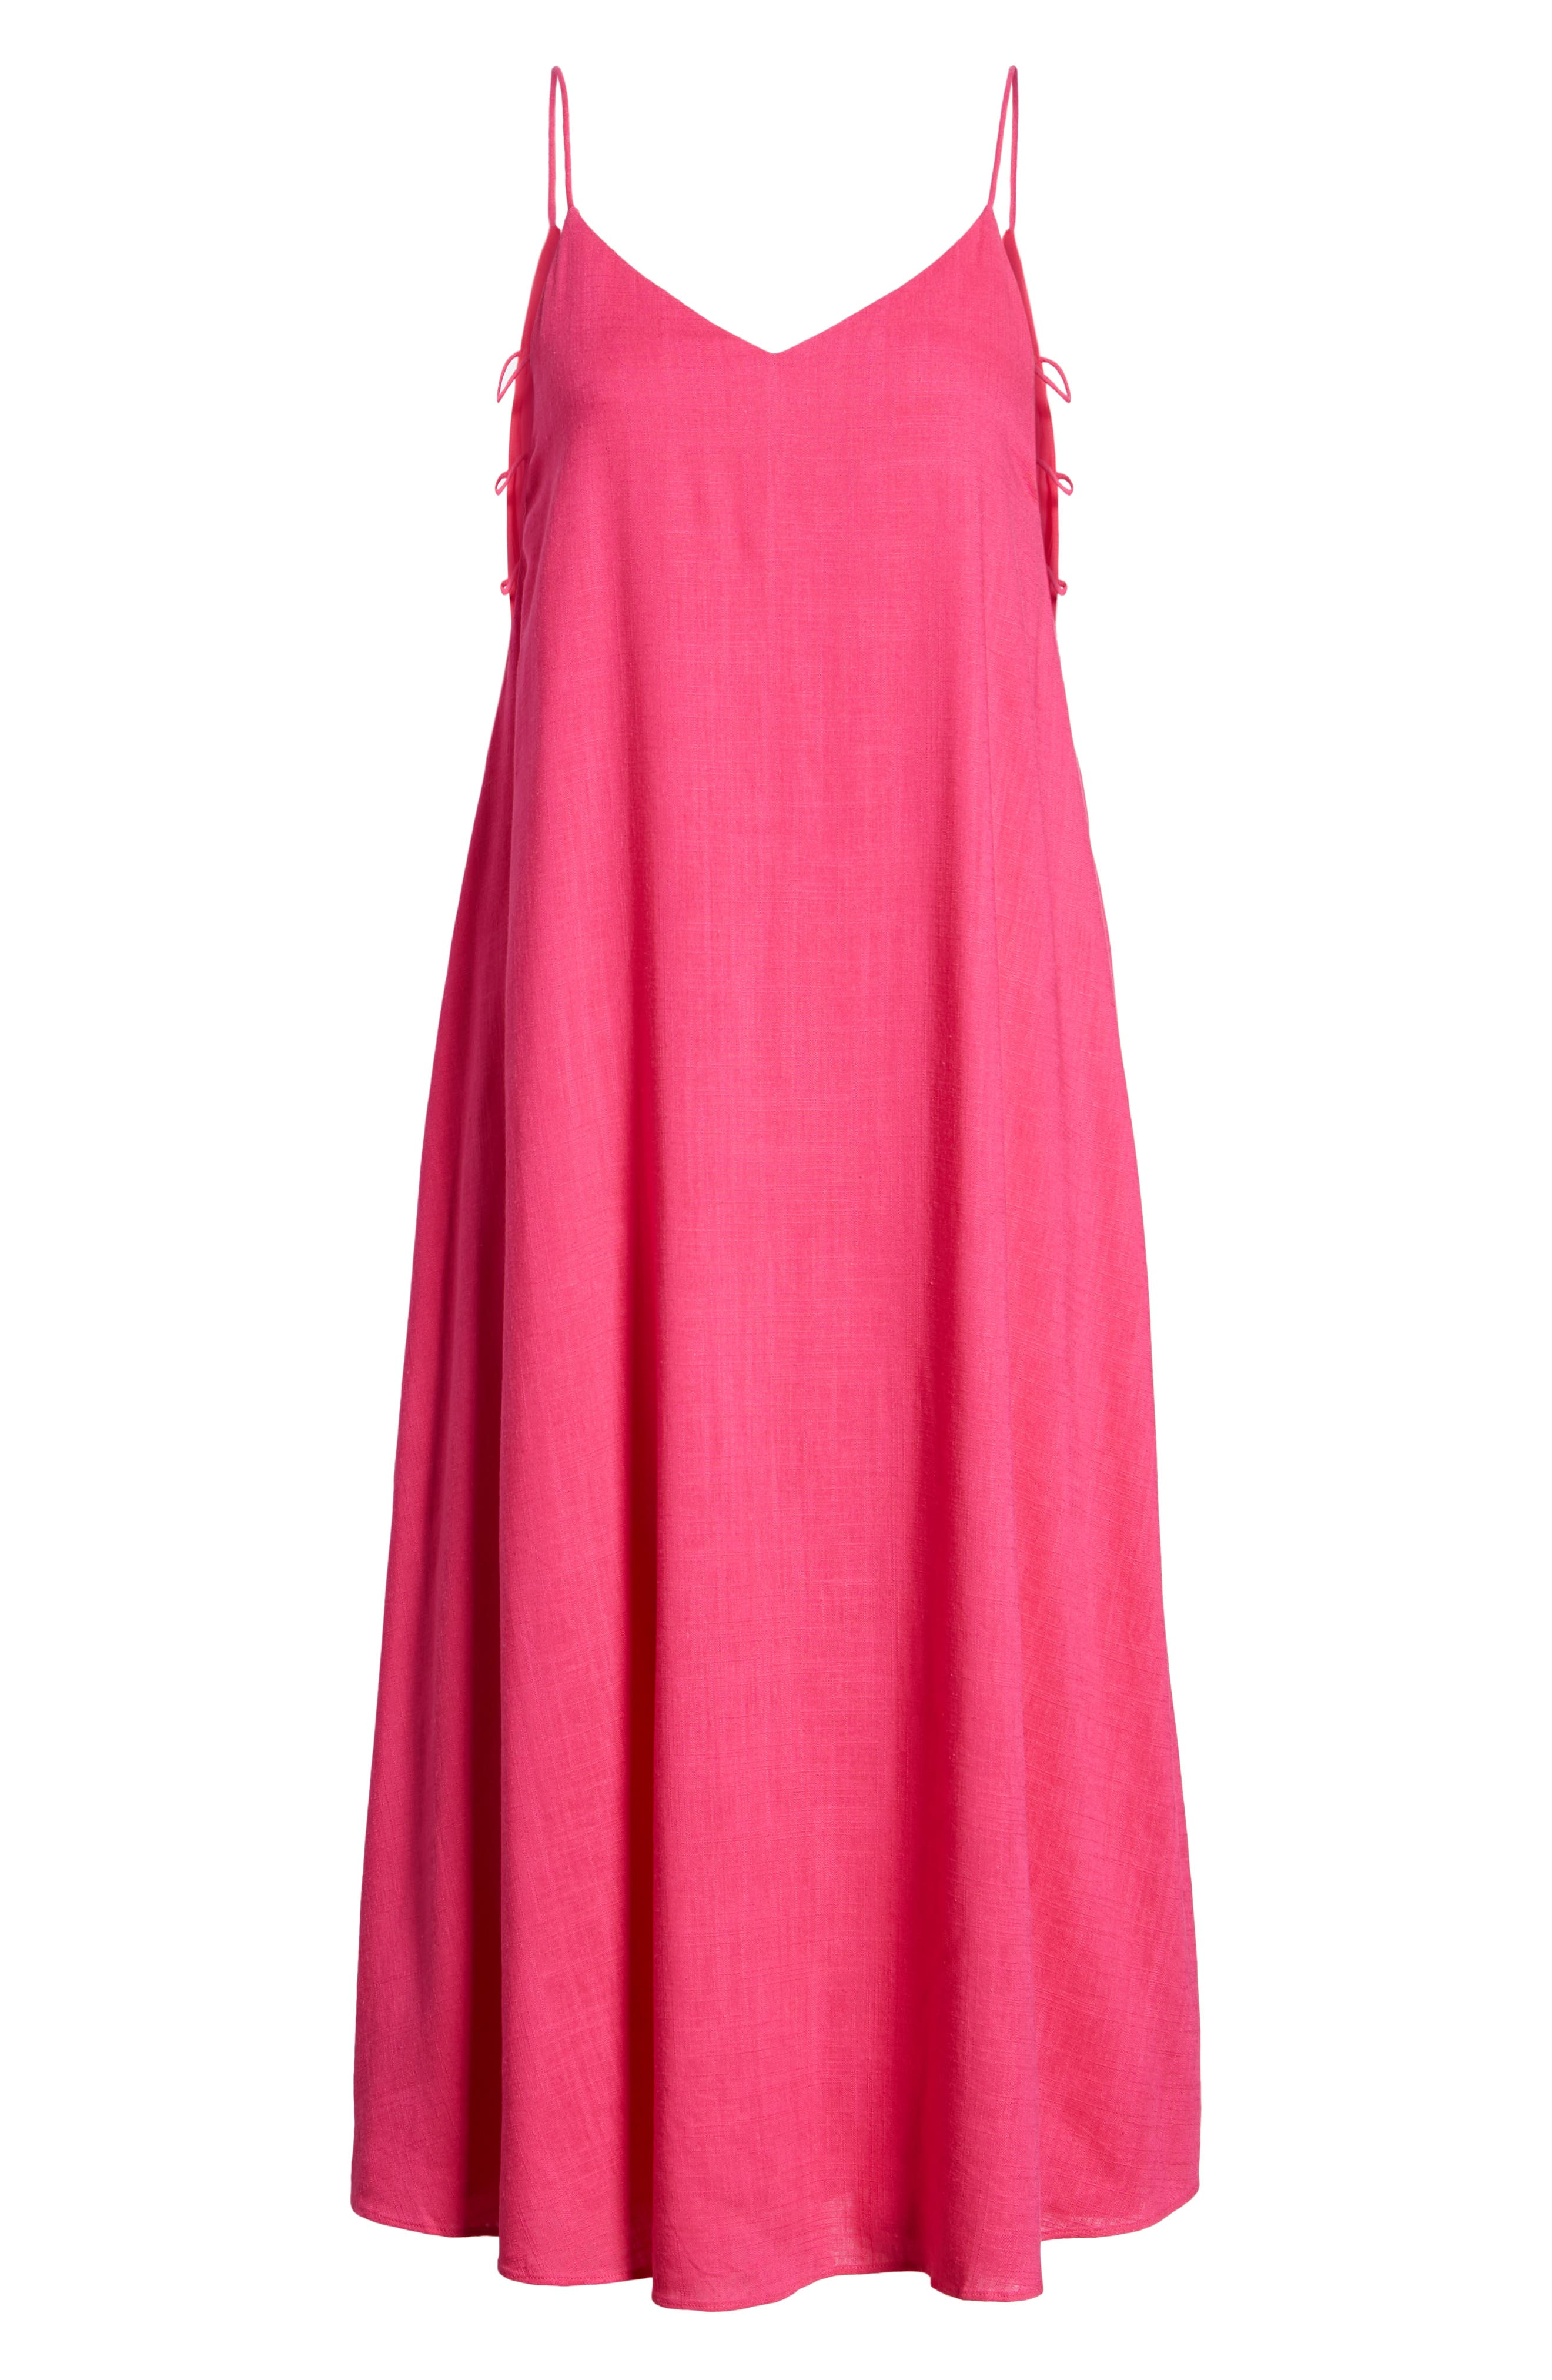 Trapeze Dress,                             Alternate thumbnail 8, color,                             Fuchsia